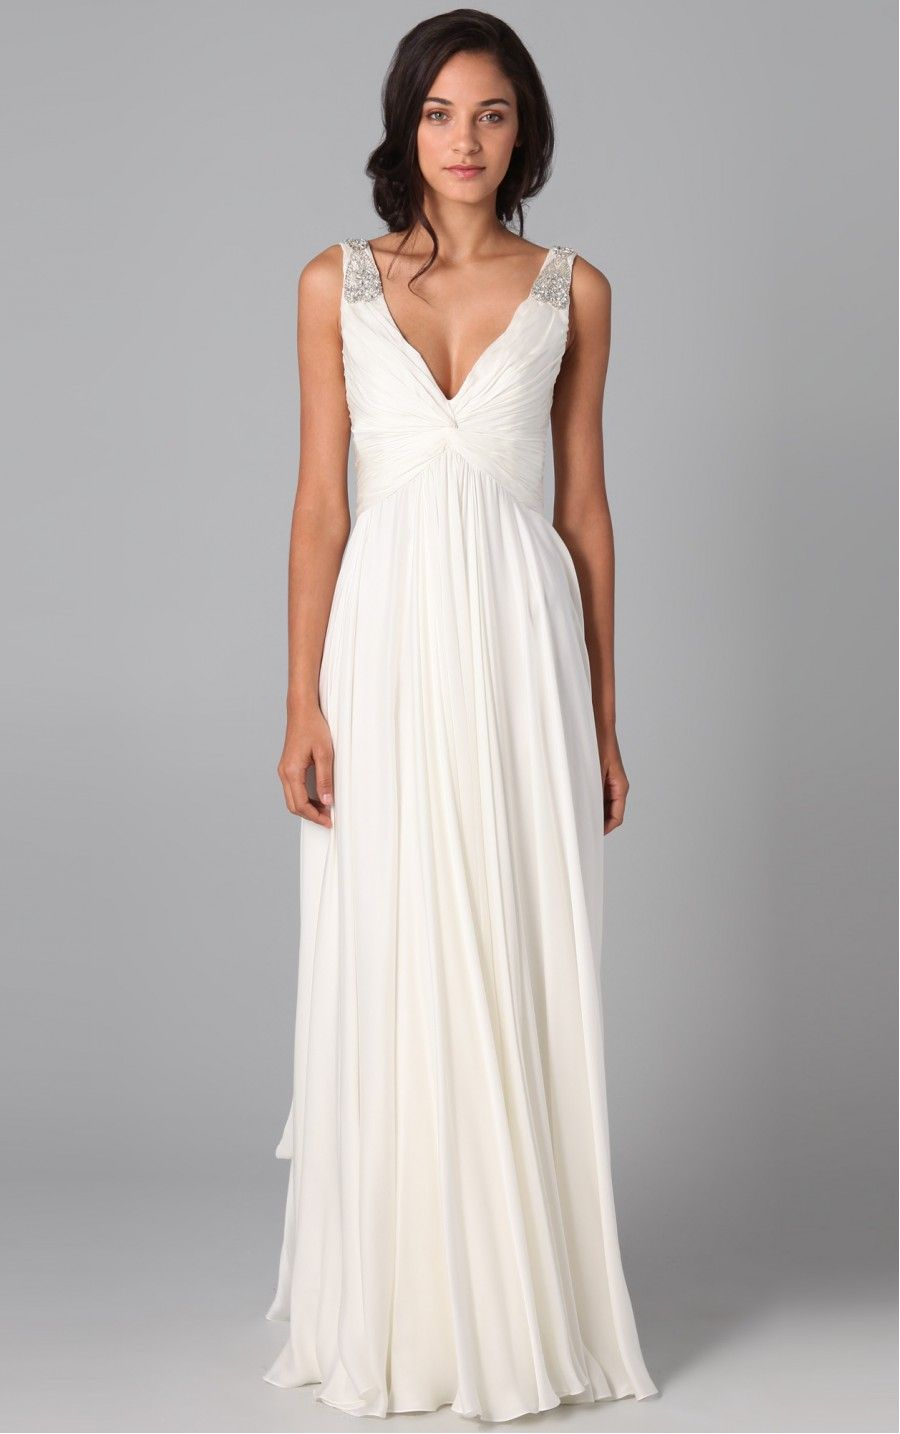 Graceful White Princess V-neck Formal Dresses | Dress | Pinterest ...